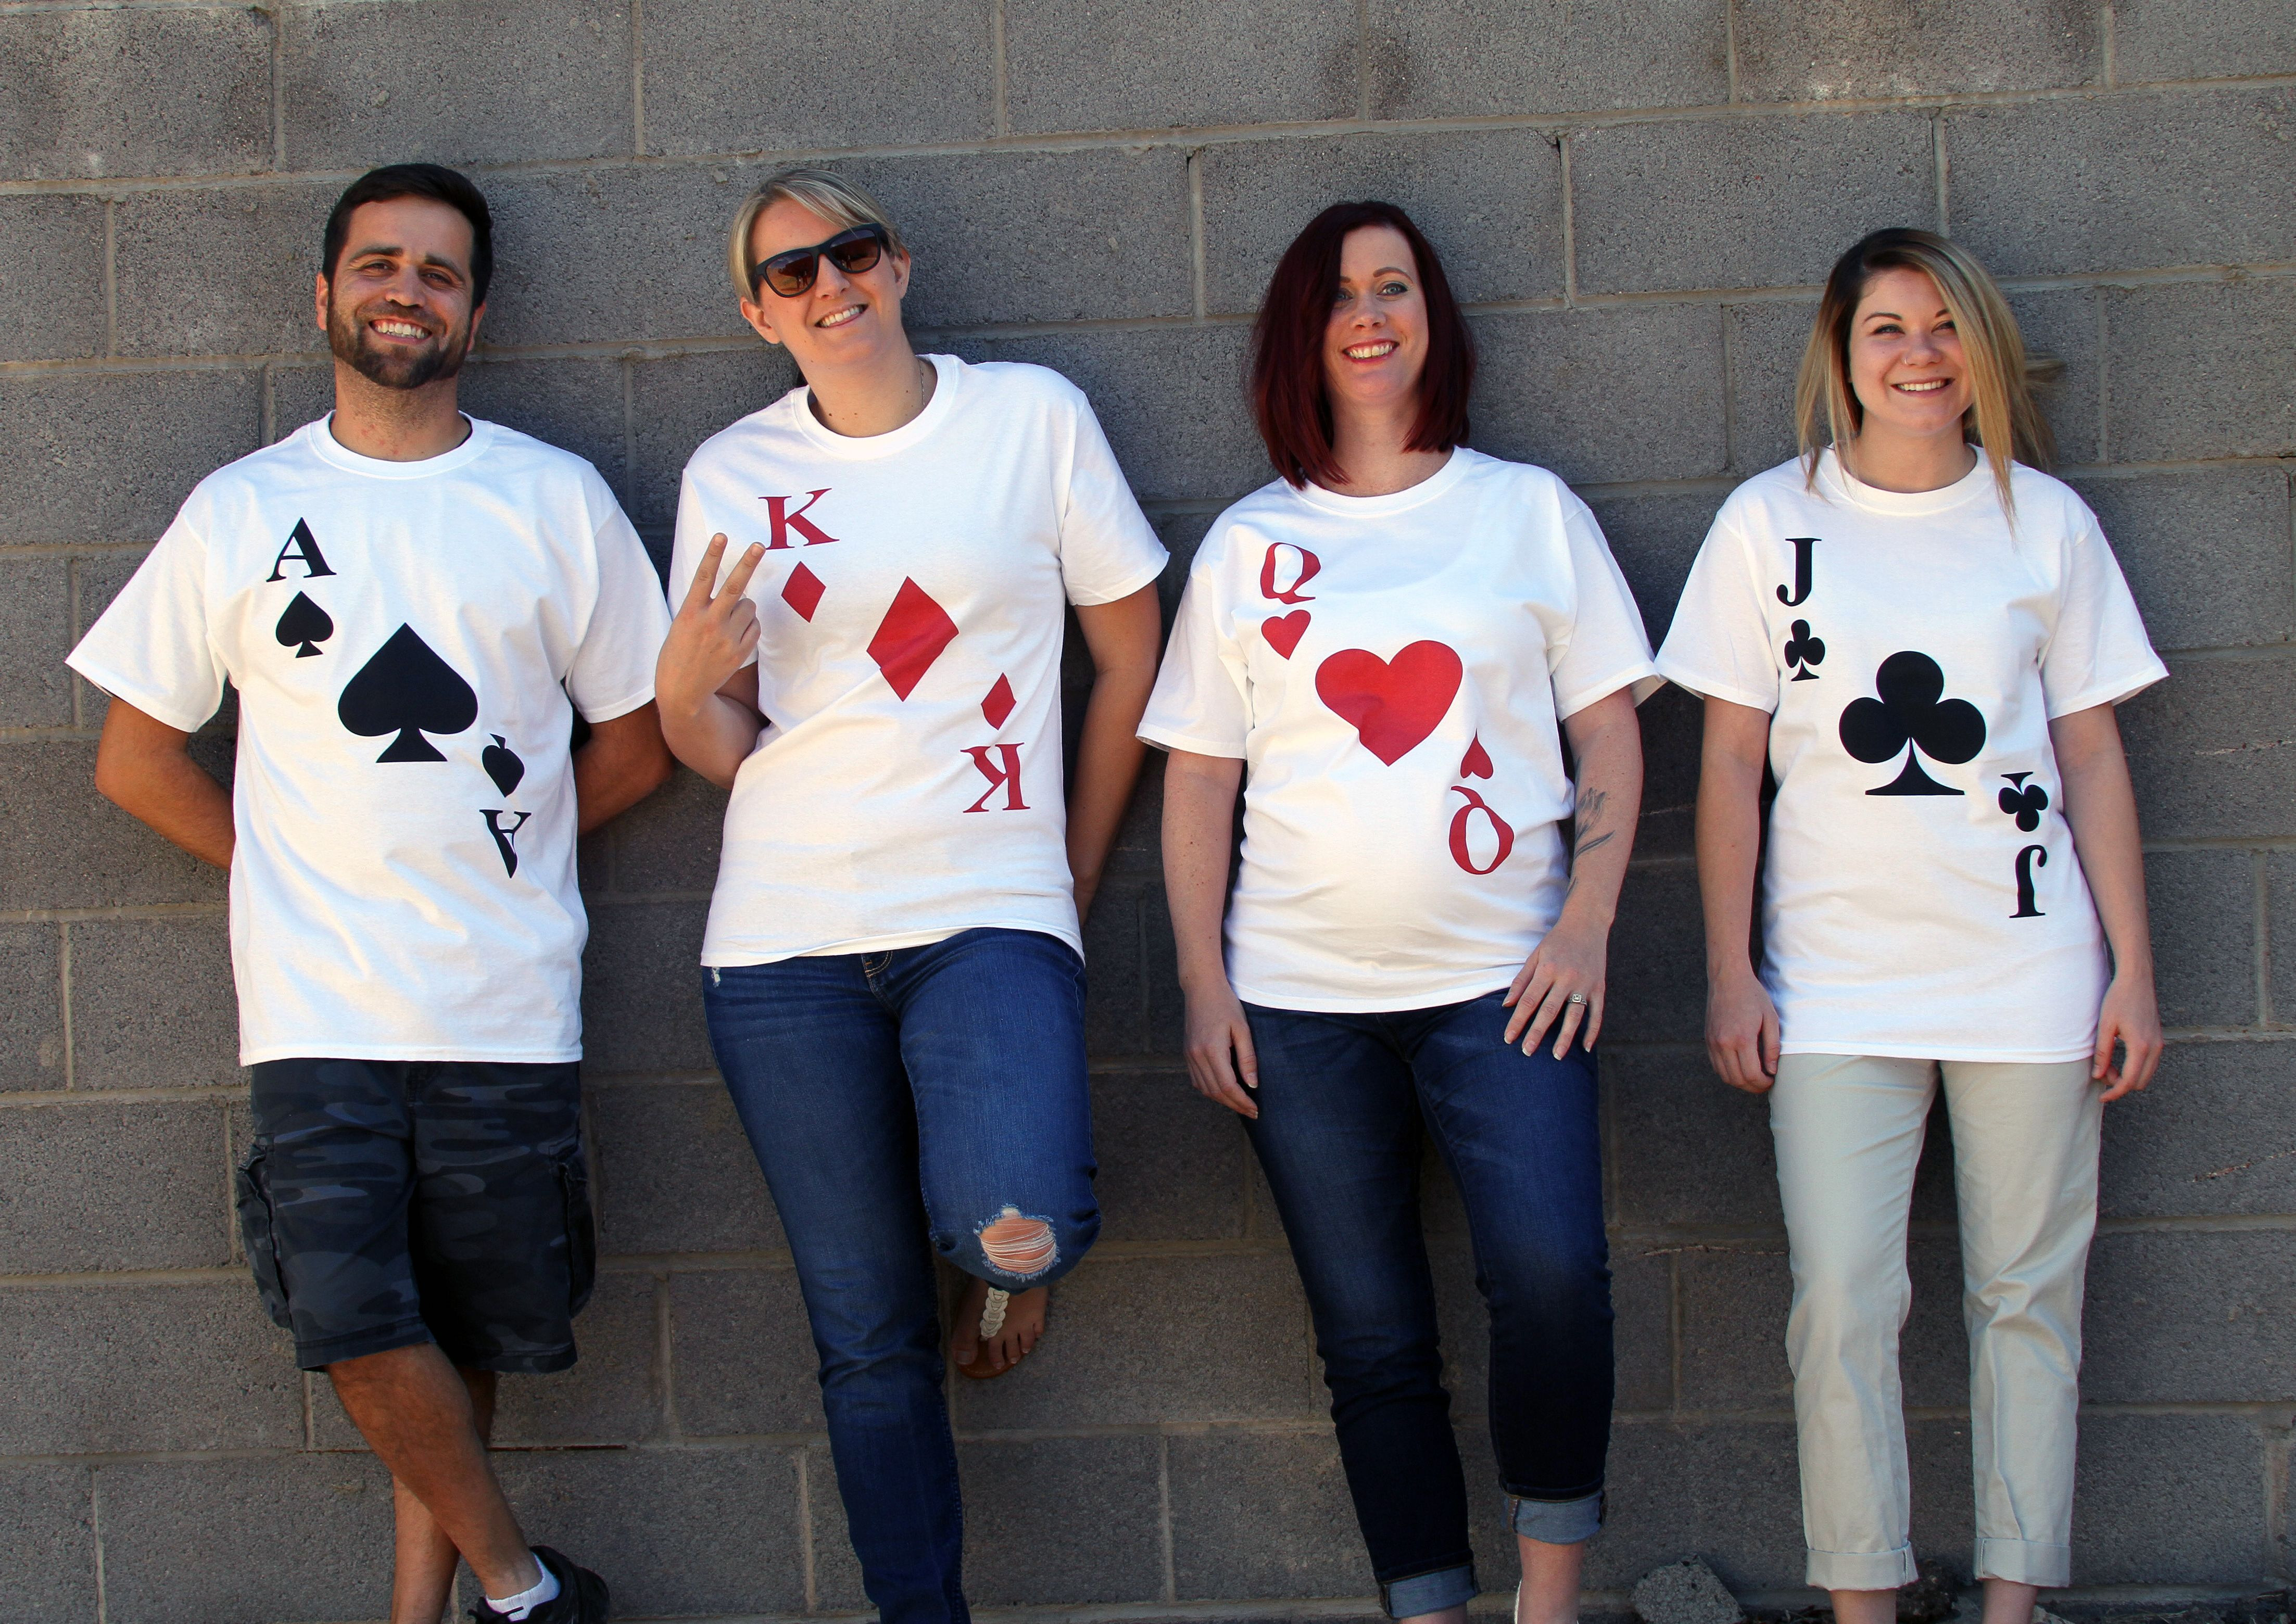 Deck Of Cards Halloween Costumes  Playing Cards Halloween Costumes